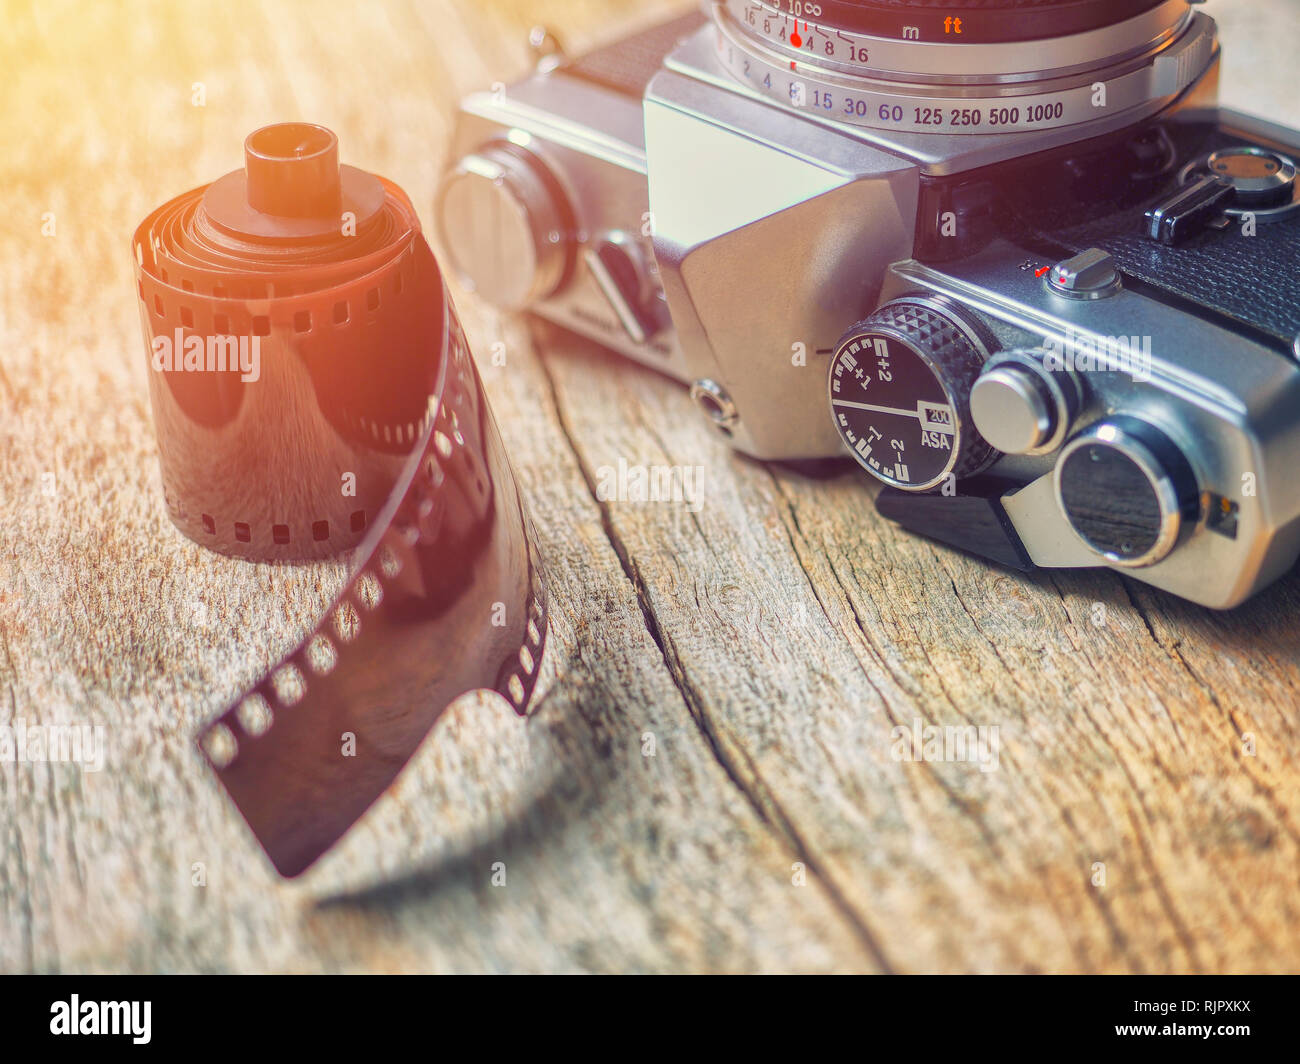 Close-up on old retro 35mm film SLR camera with photographic film resting on a wooden table - Stock Image